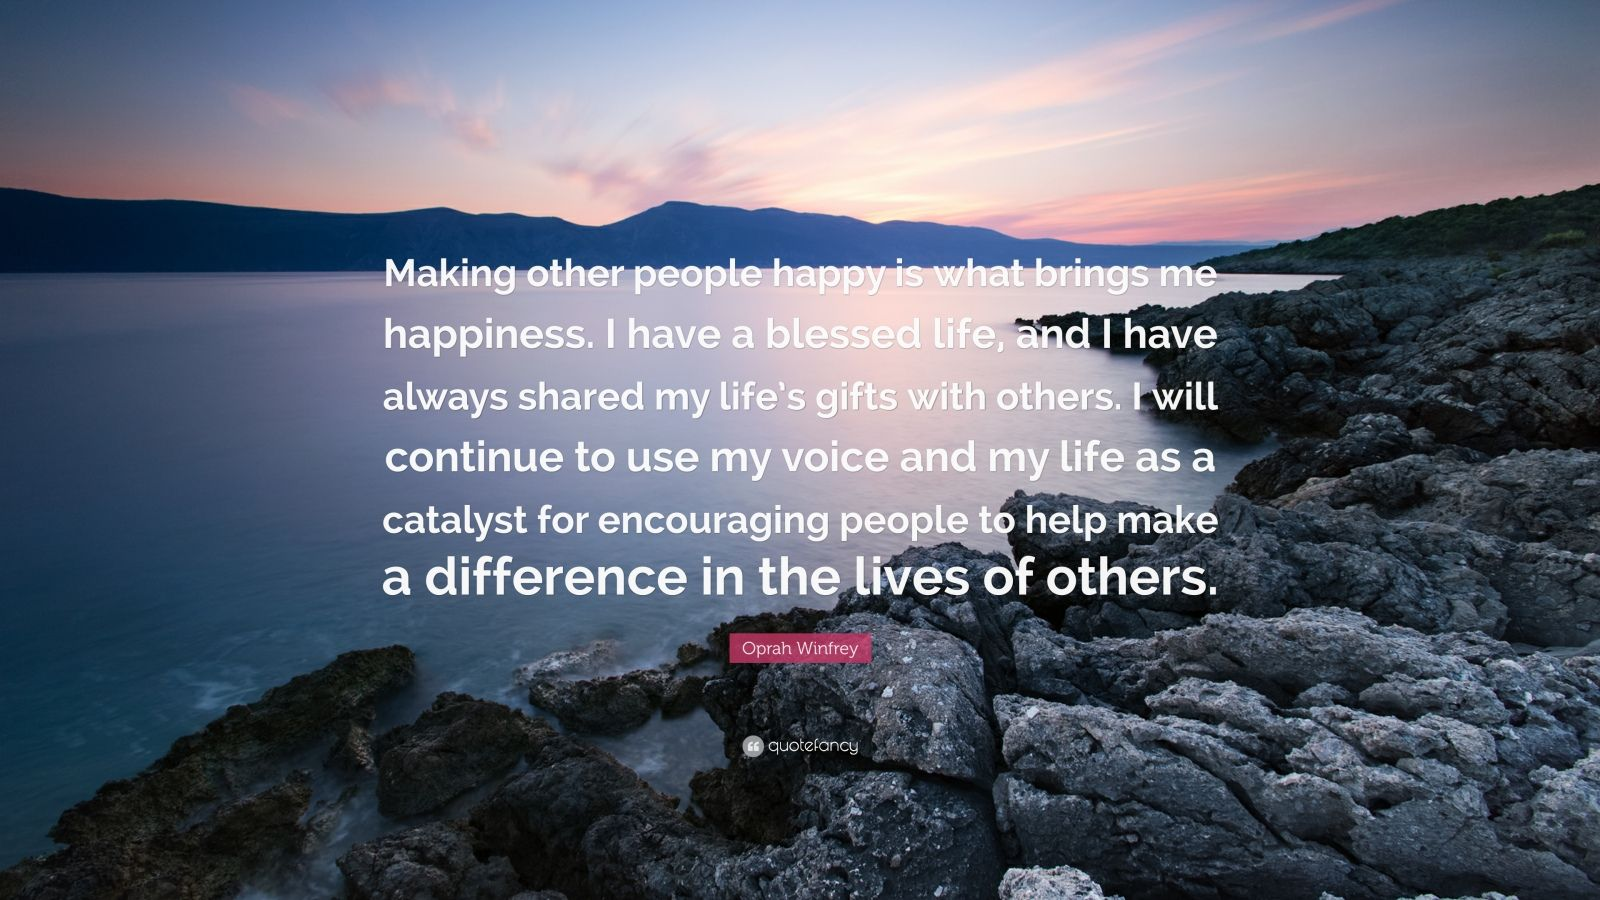 """Oprah Winfrey Quote: """"Making other people happy is what brings me happiness. I have a blessed life, and I have always shared my life's gifts with others. I will continue to use my voice and my life as a catalyst for encouraging people to help make a difference in the lives of others."""""""